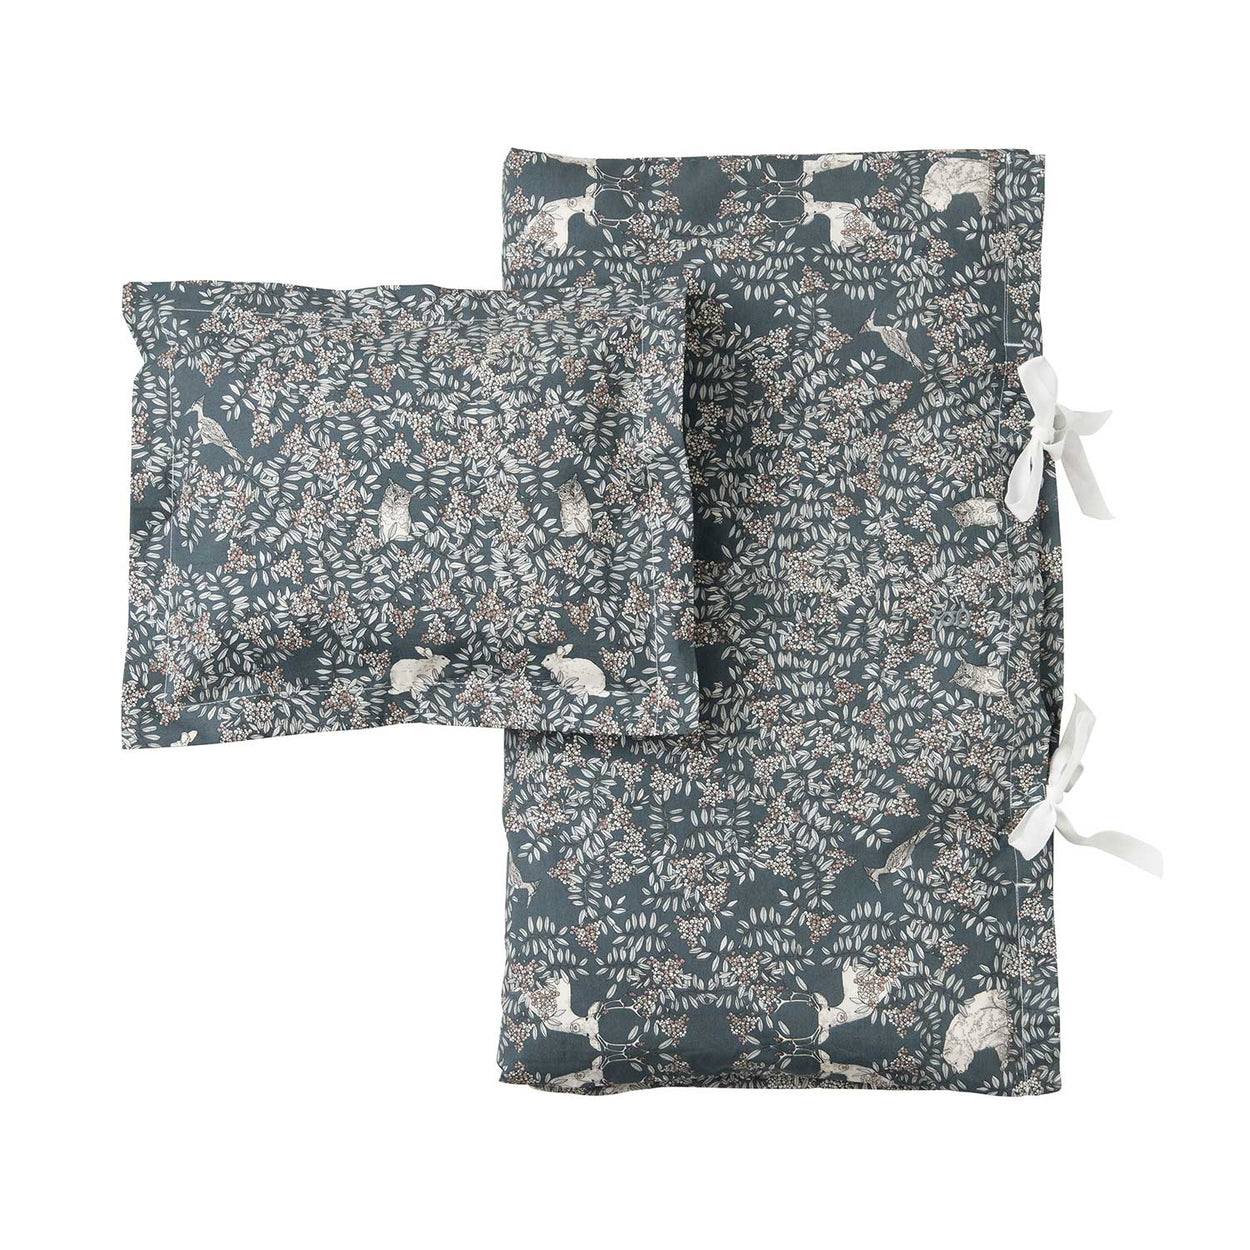 Garbo&Friends Fauna Bed Set